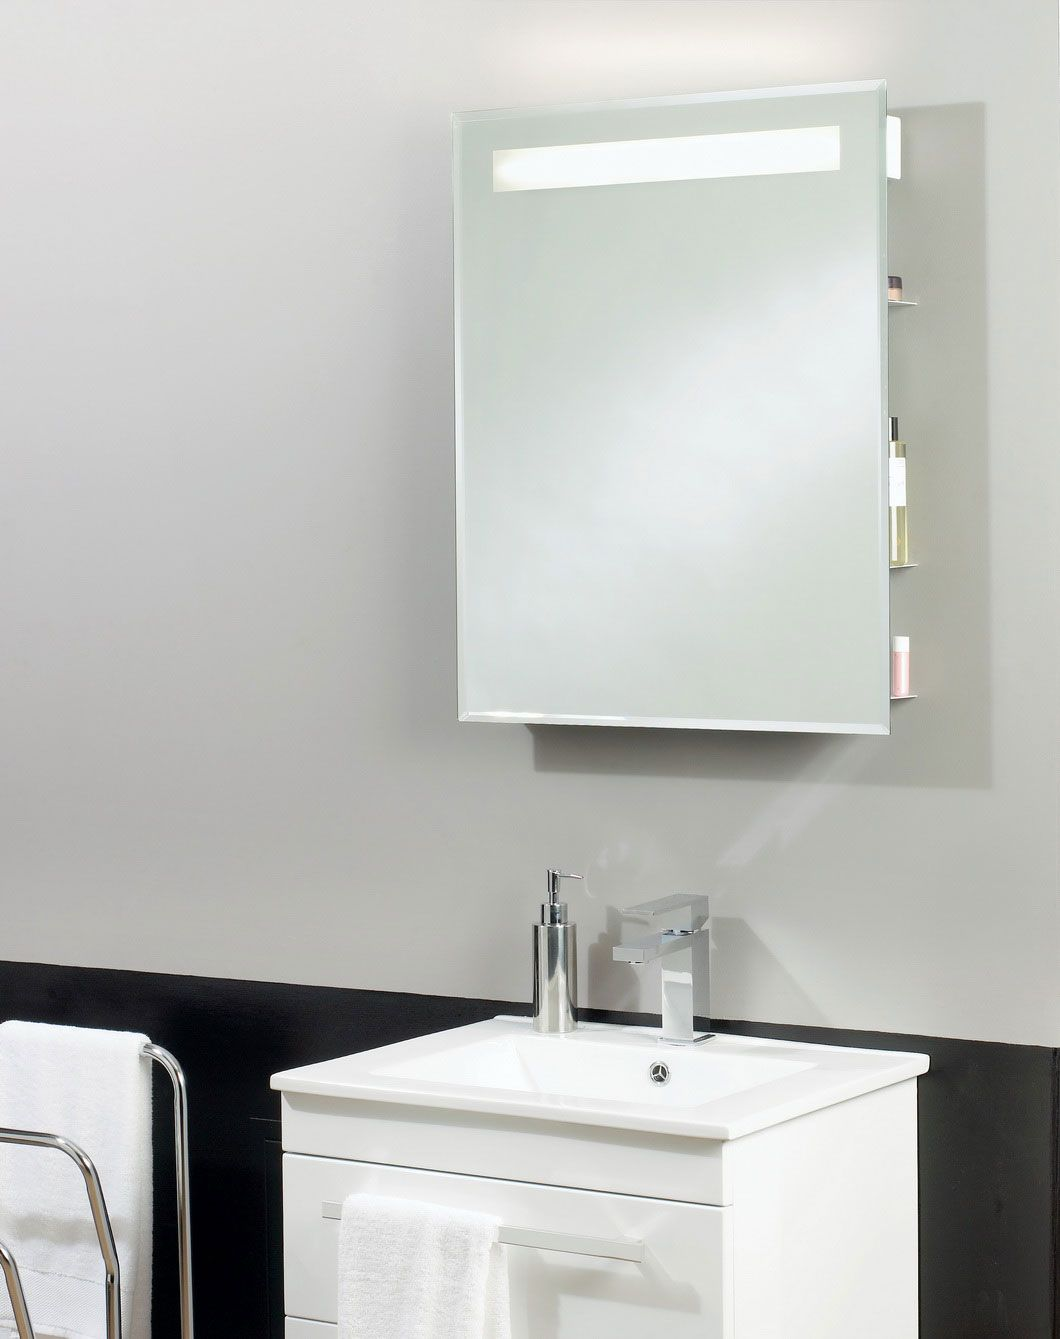 Bathroom Mirror Designs 25 Best Bathroom Mirror Ideas For A Small Bathroom  Bathroom